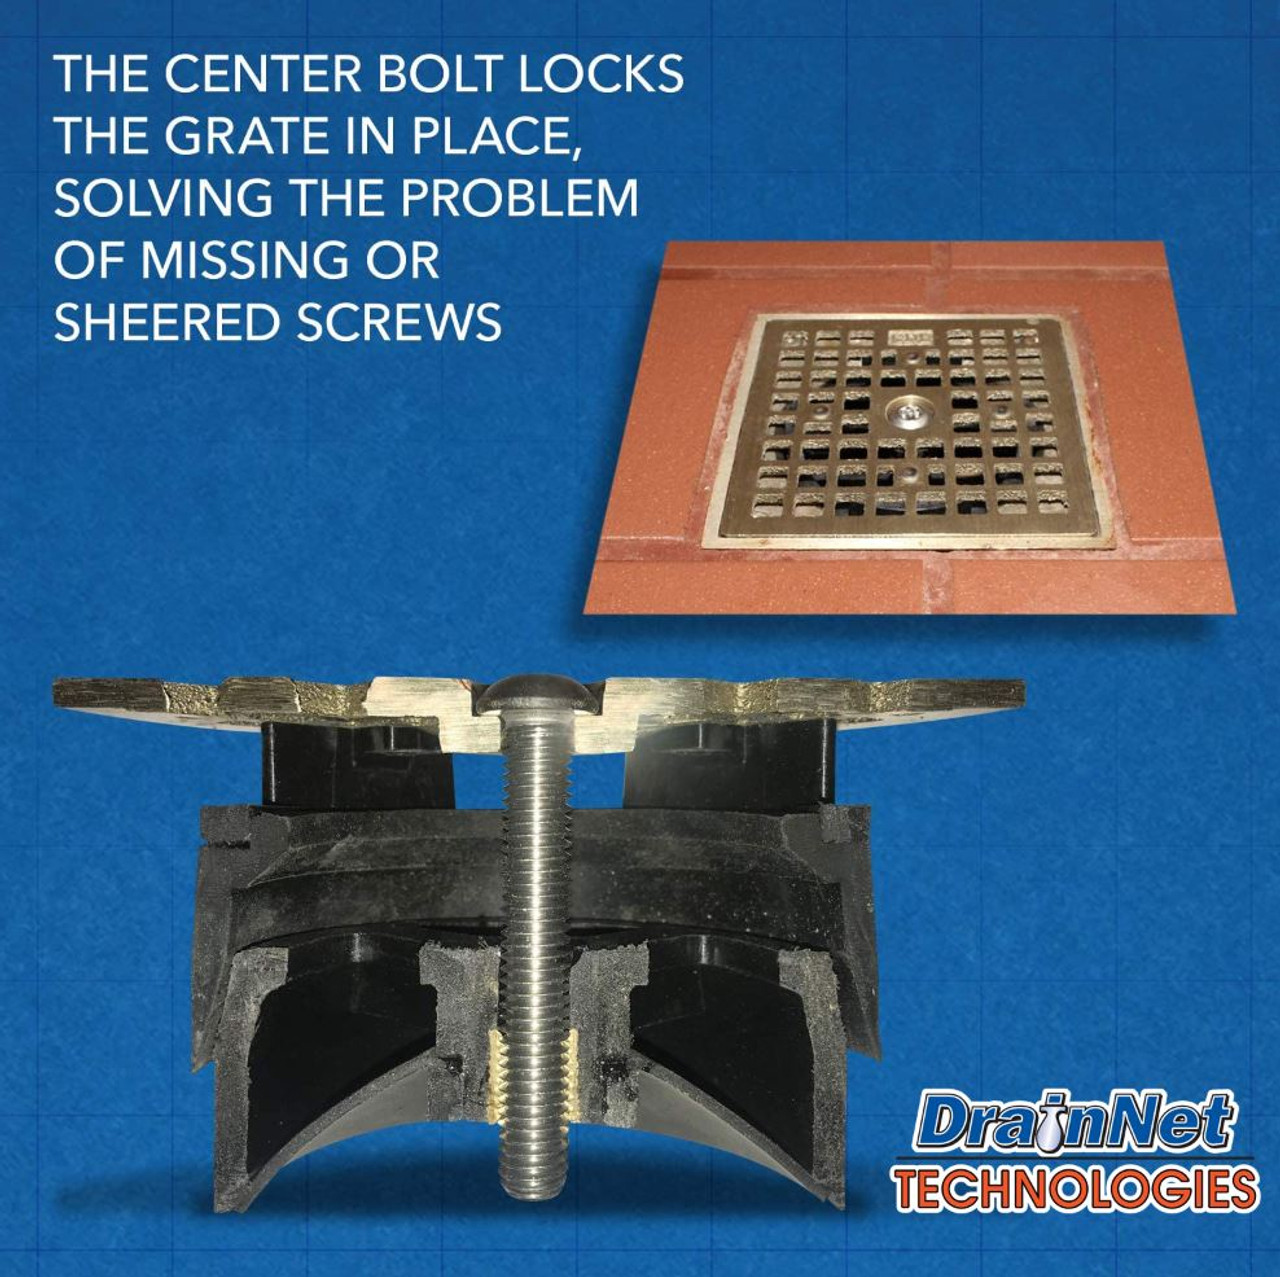 LockOut - Locking Floor Drain Replacement Grate With Odor and Bug Blocking Valve   Blocks Sewer Gas Odors, Bugs